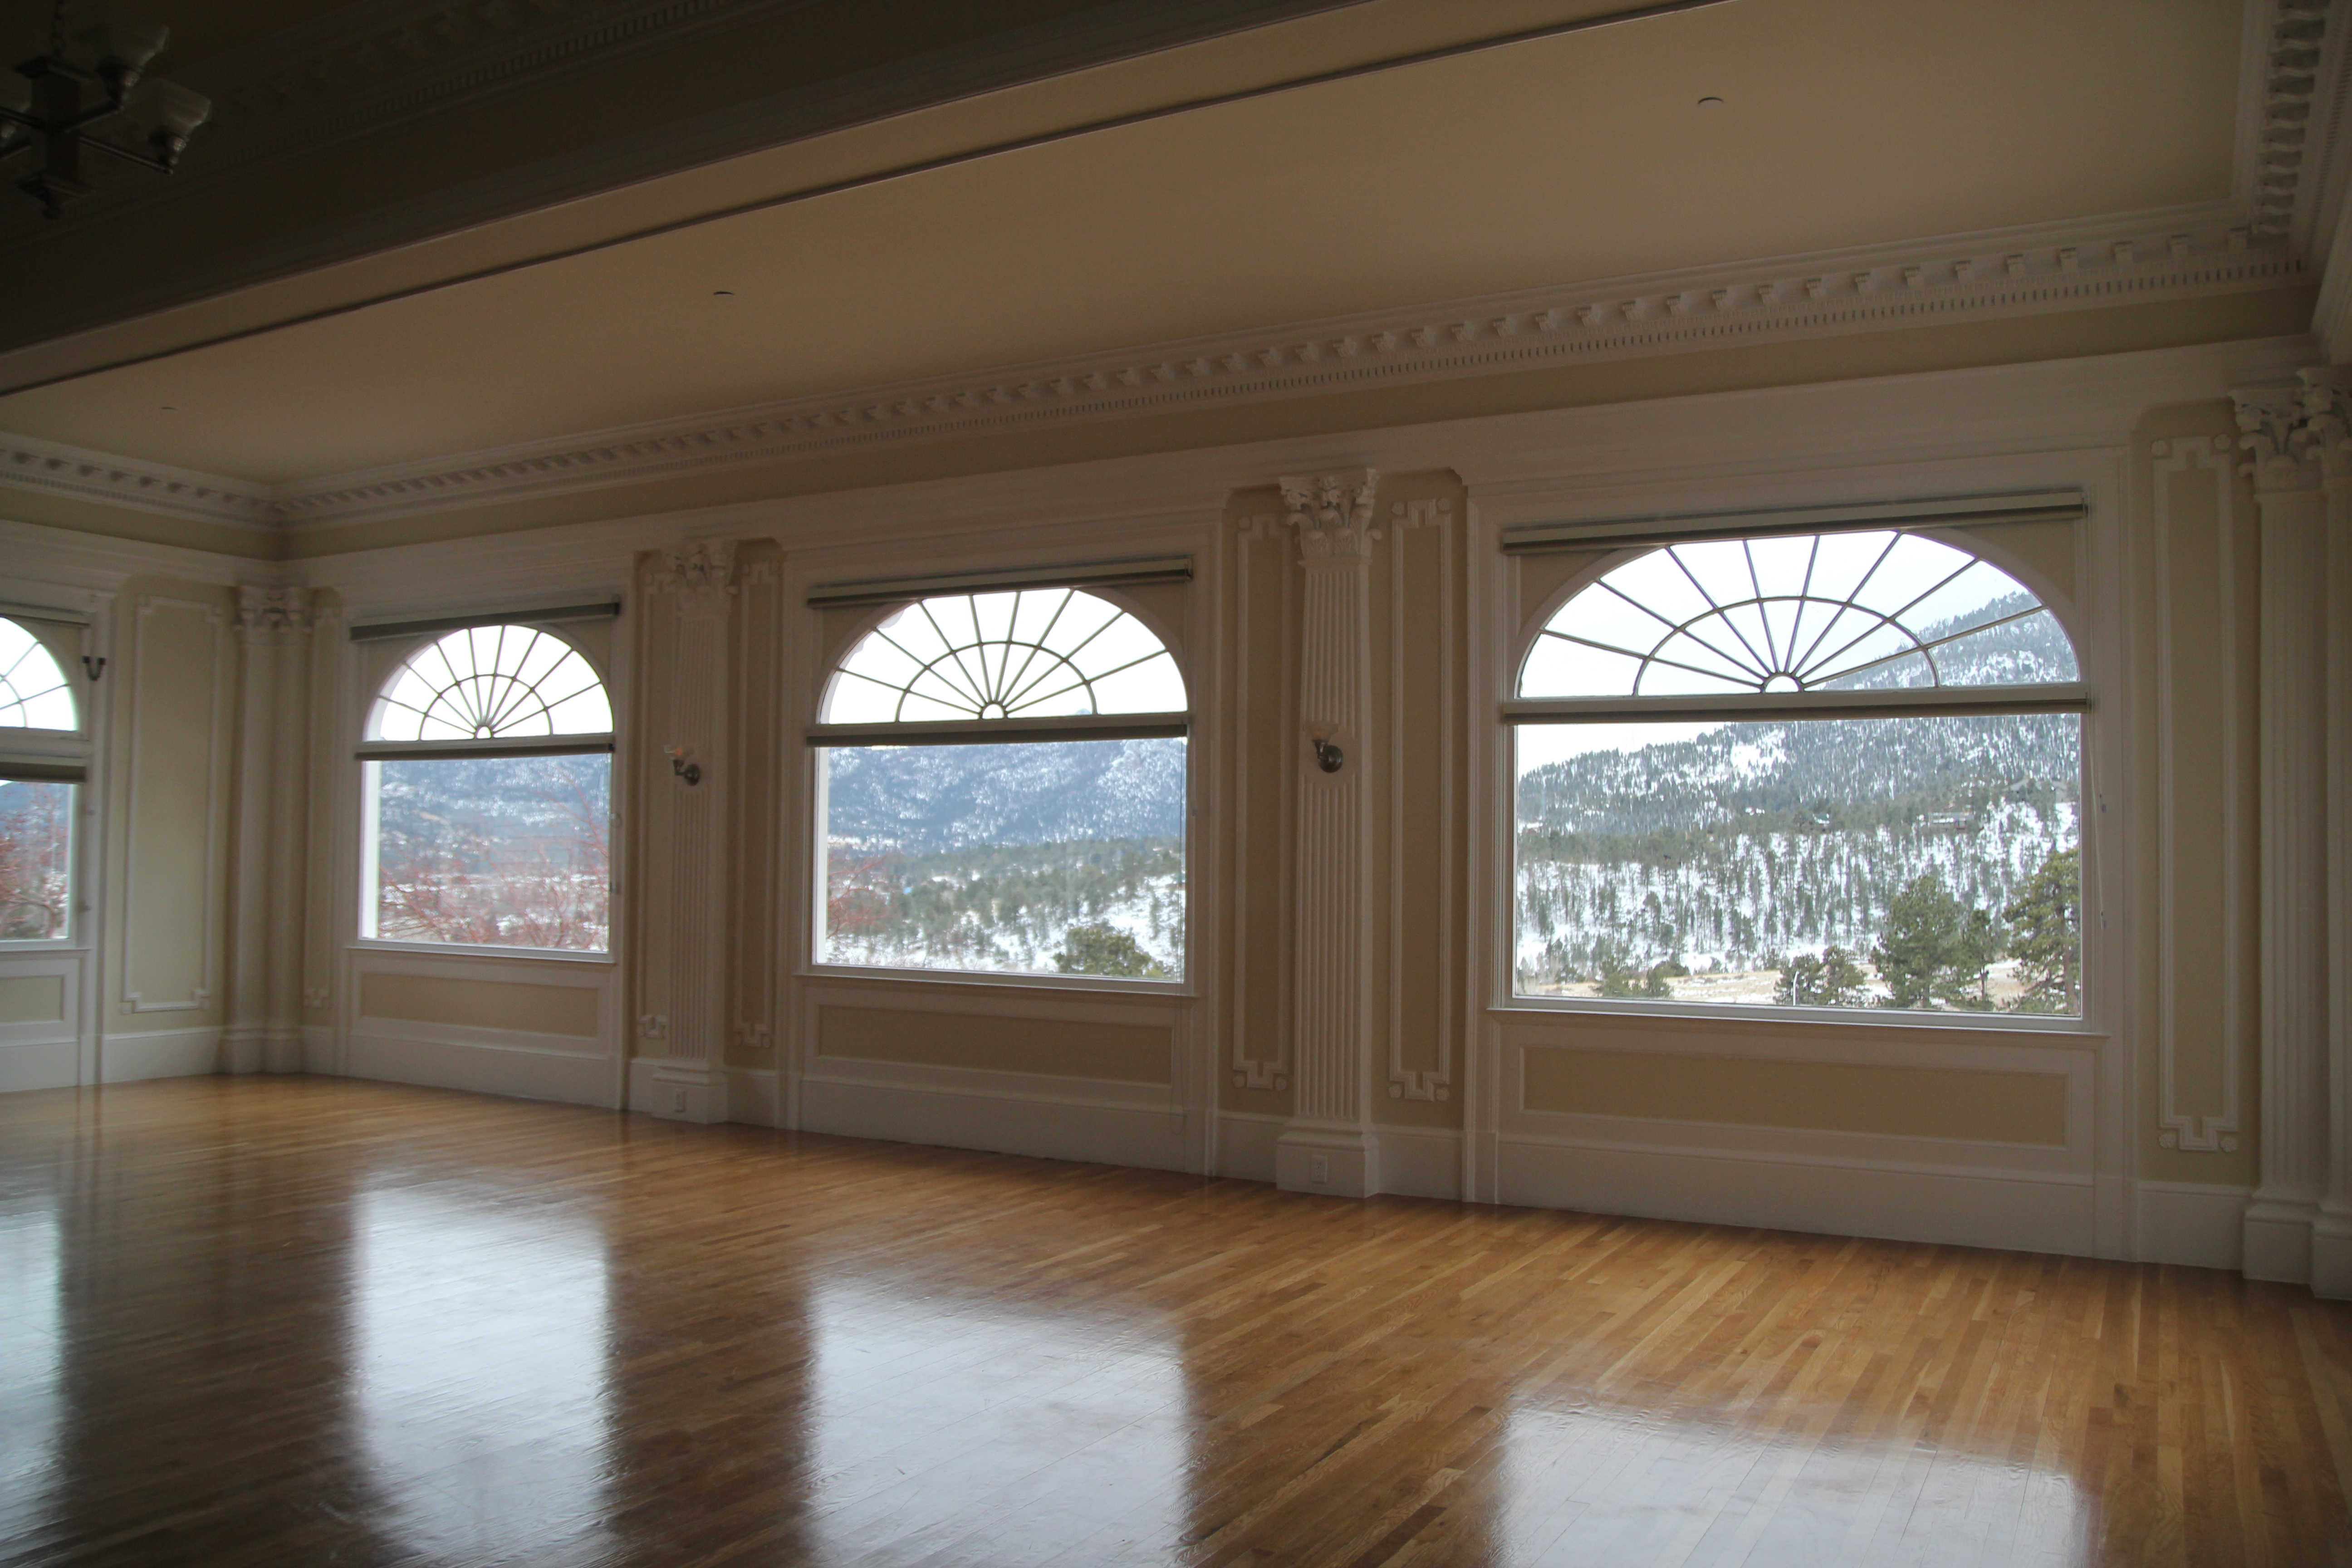 Music Room And Rockie Mountains